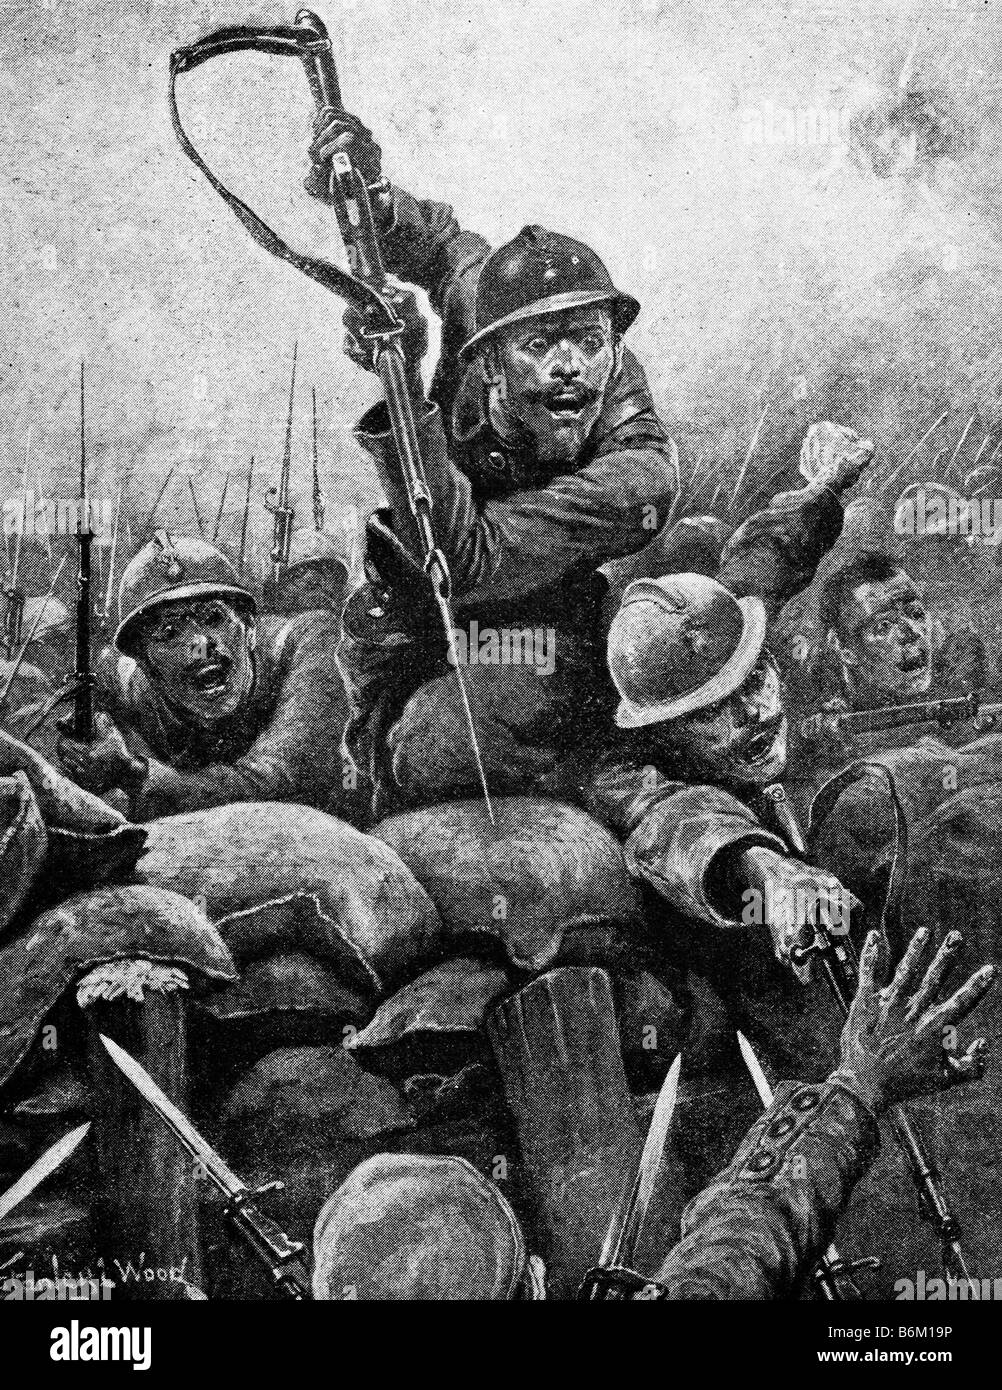 Contemporary World War One Illustration Of French Soldiers Storming